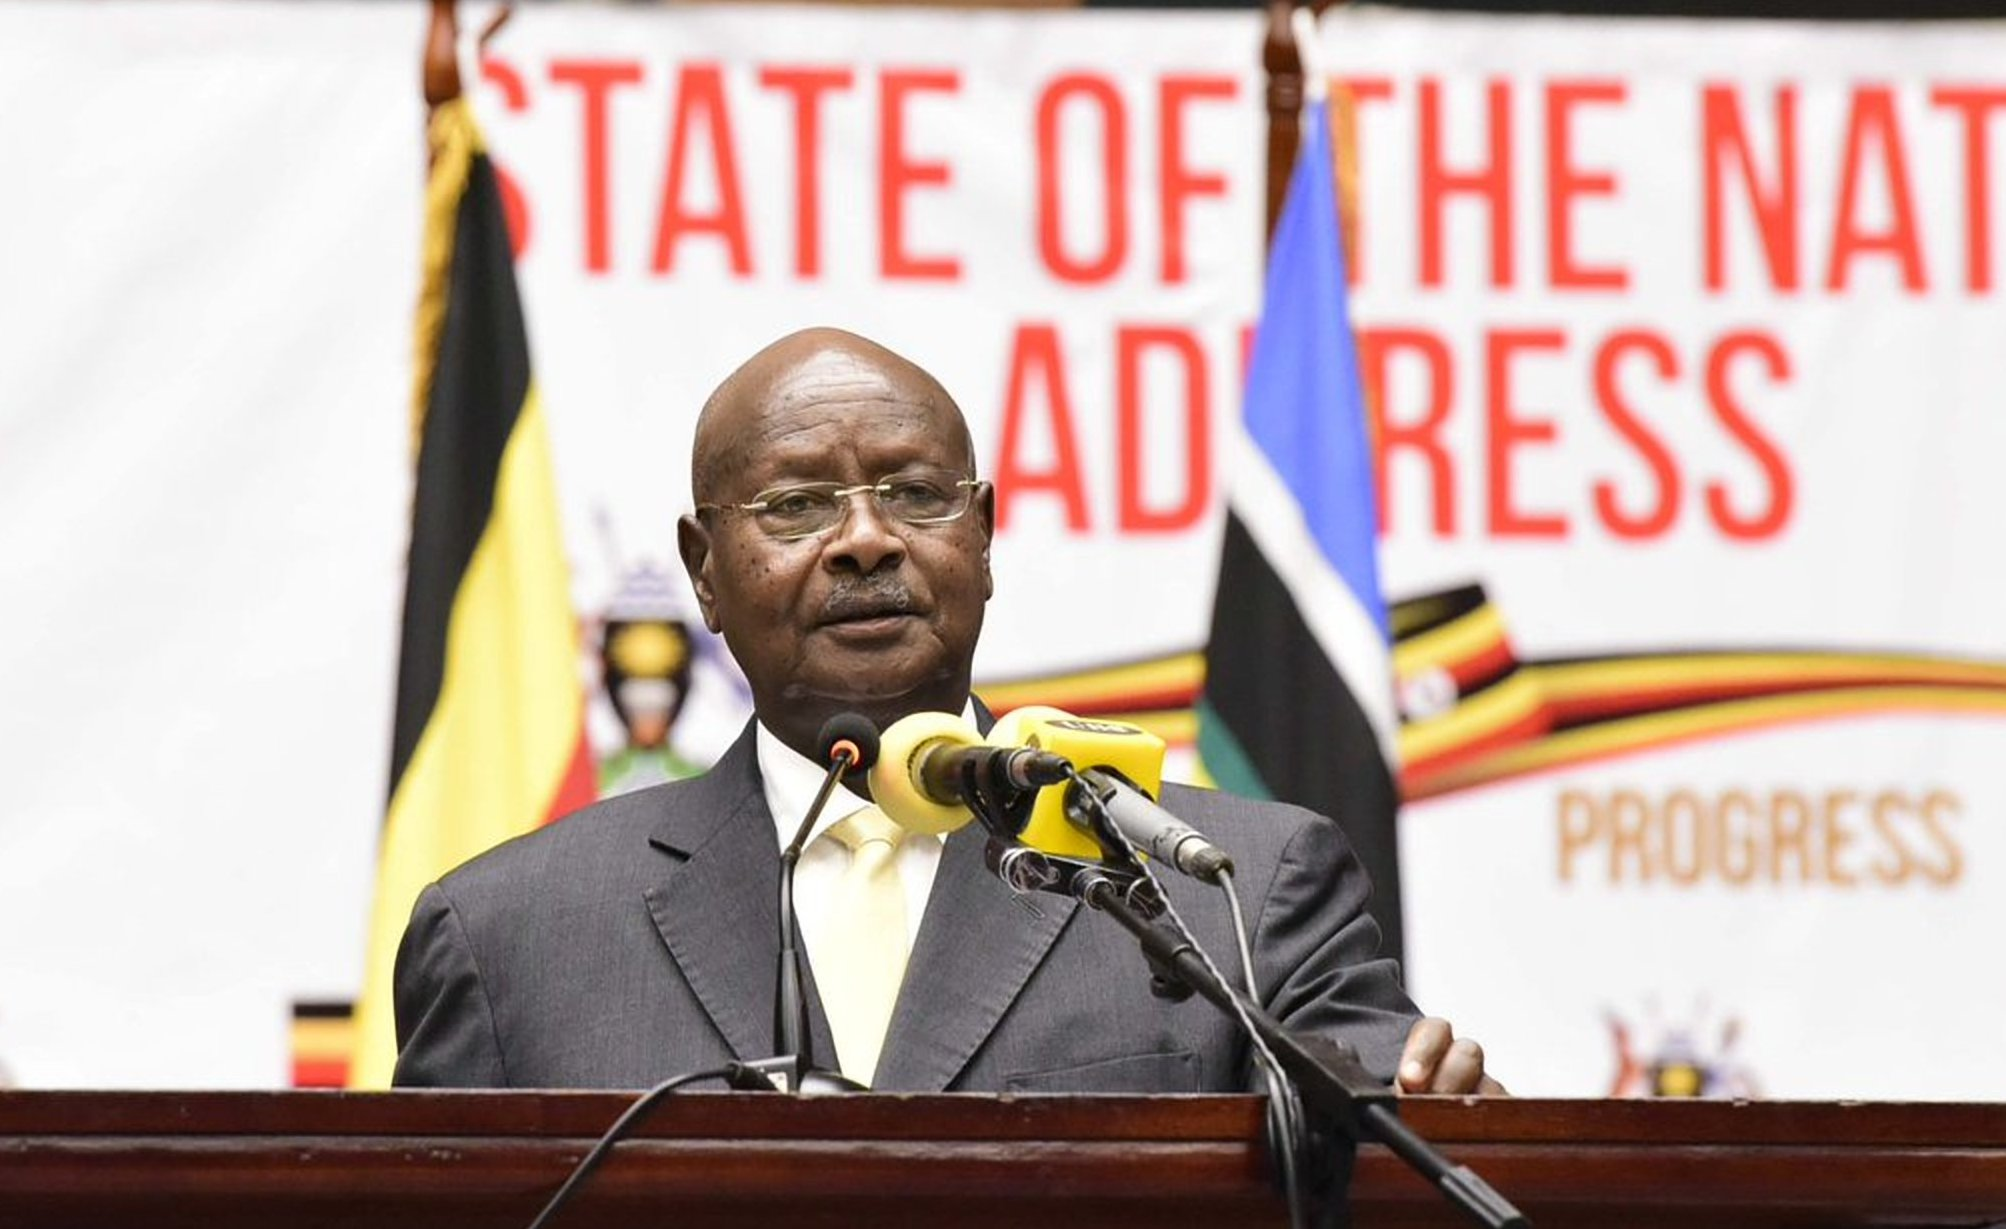 President Museveni delivers the State of Nation Address at the Serena Conference Centre June 6 2018. President Museveni has acknowledged that the social media tax is to benefit Uganda (FILE PHOTO)